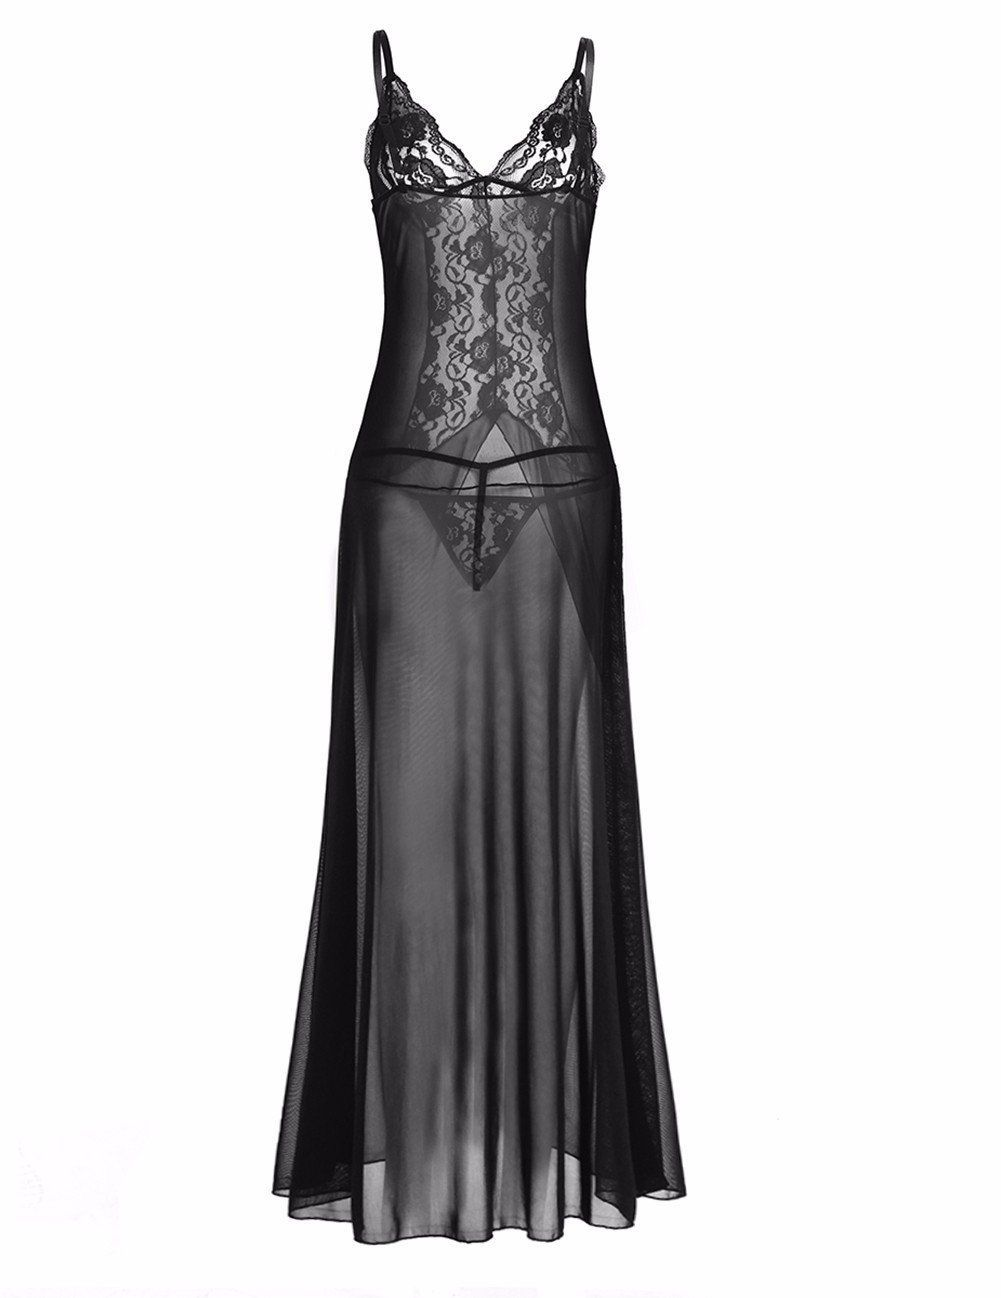 Feeshow womens sheer lace lingerie deep v neck long gowns dress with